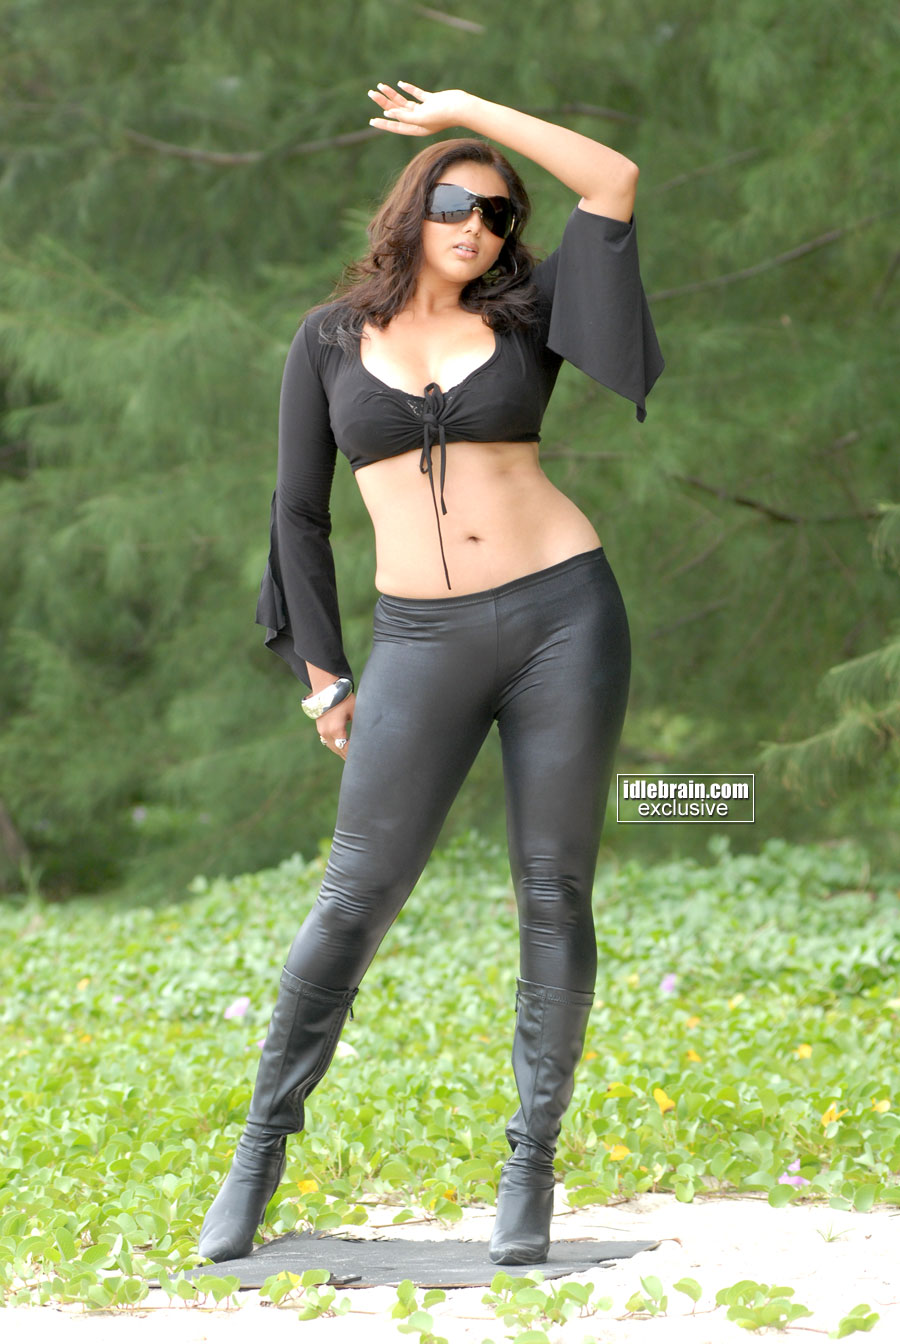 Actress Namitha in Sexy Tight Leather Pants